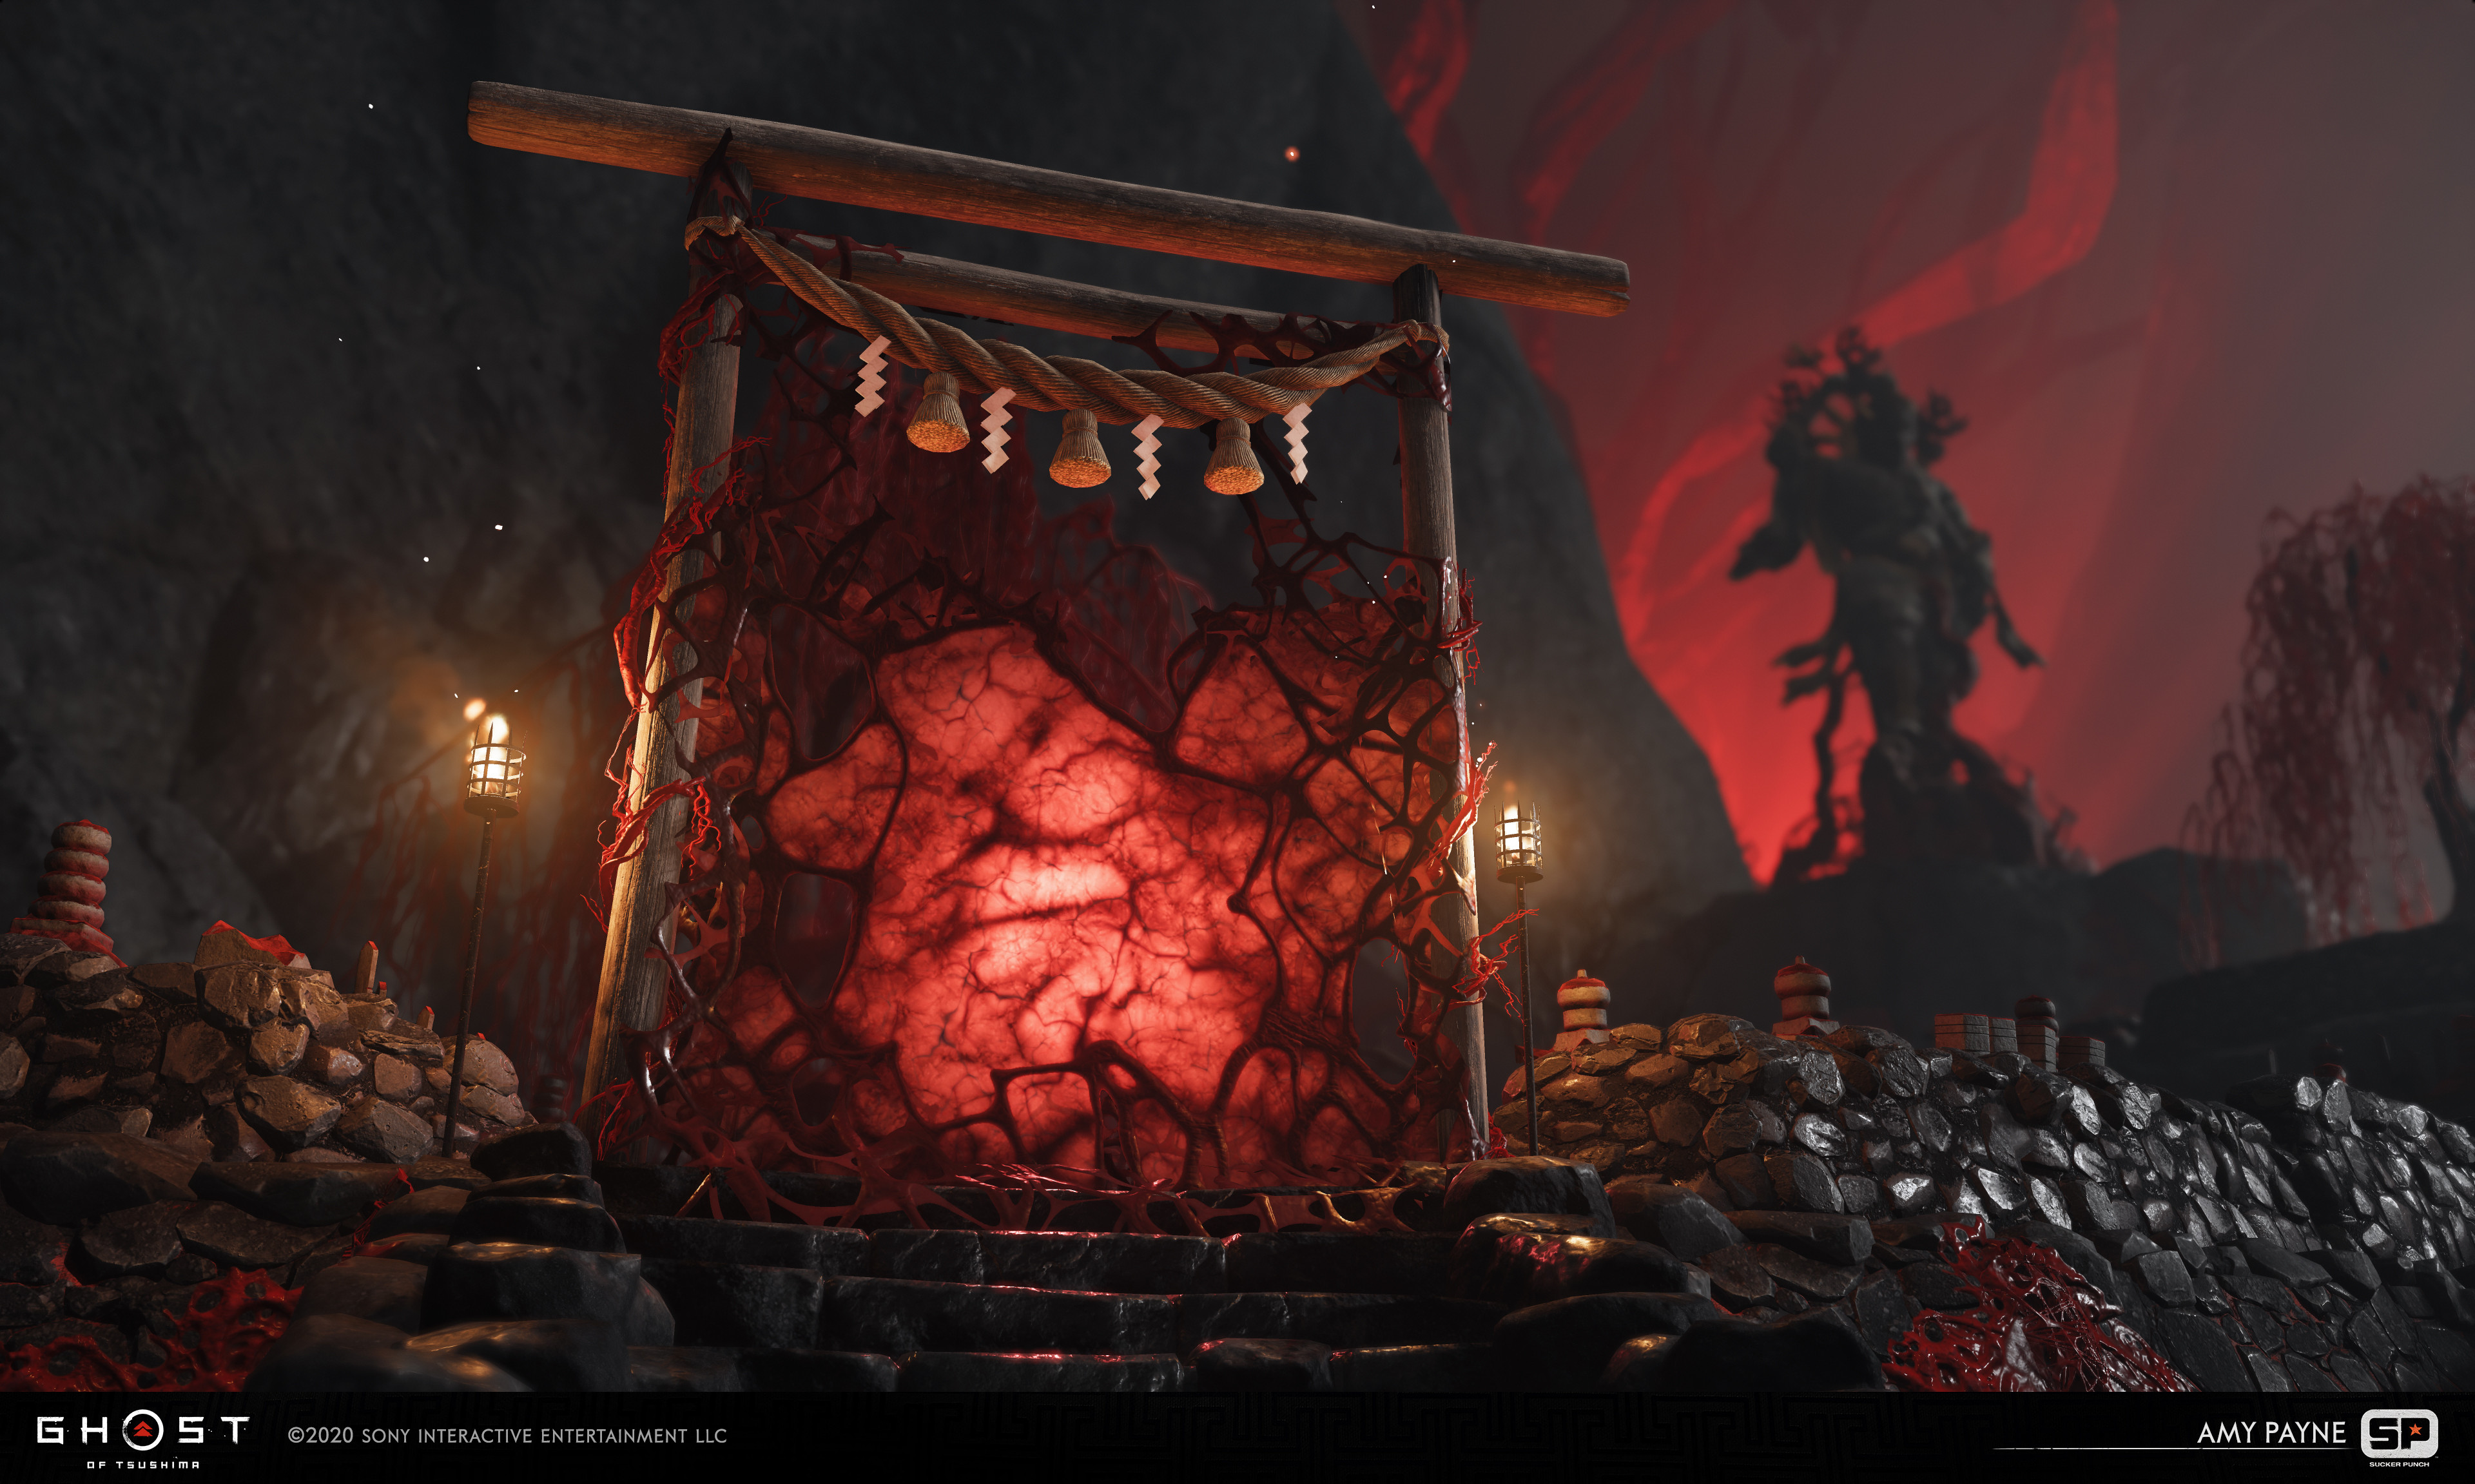 Responsible for the cursed gate sinew material and pulsing animation. Lighting by Gaby Soto, FX by Matt Vainio.